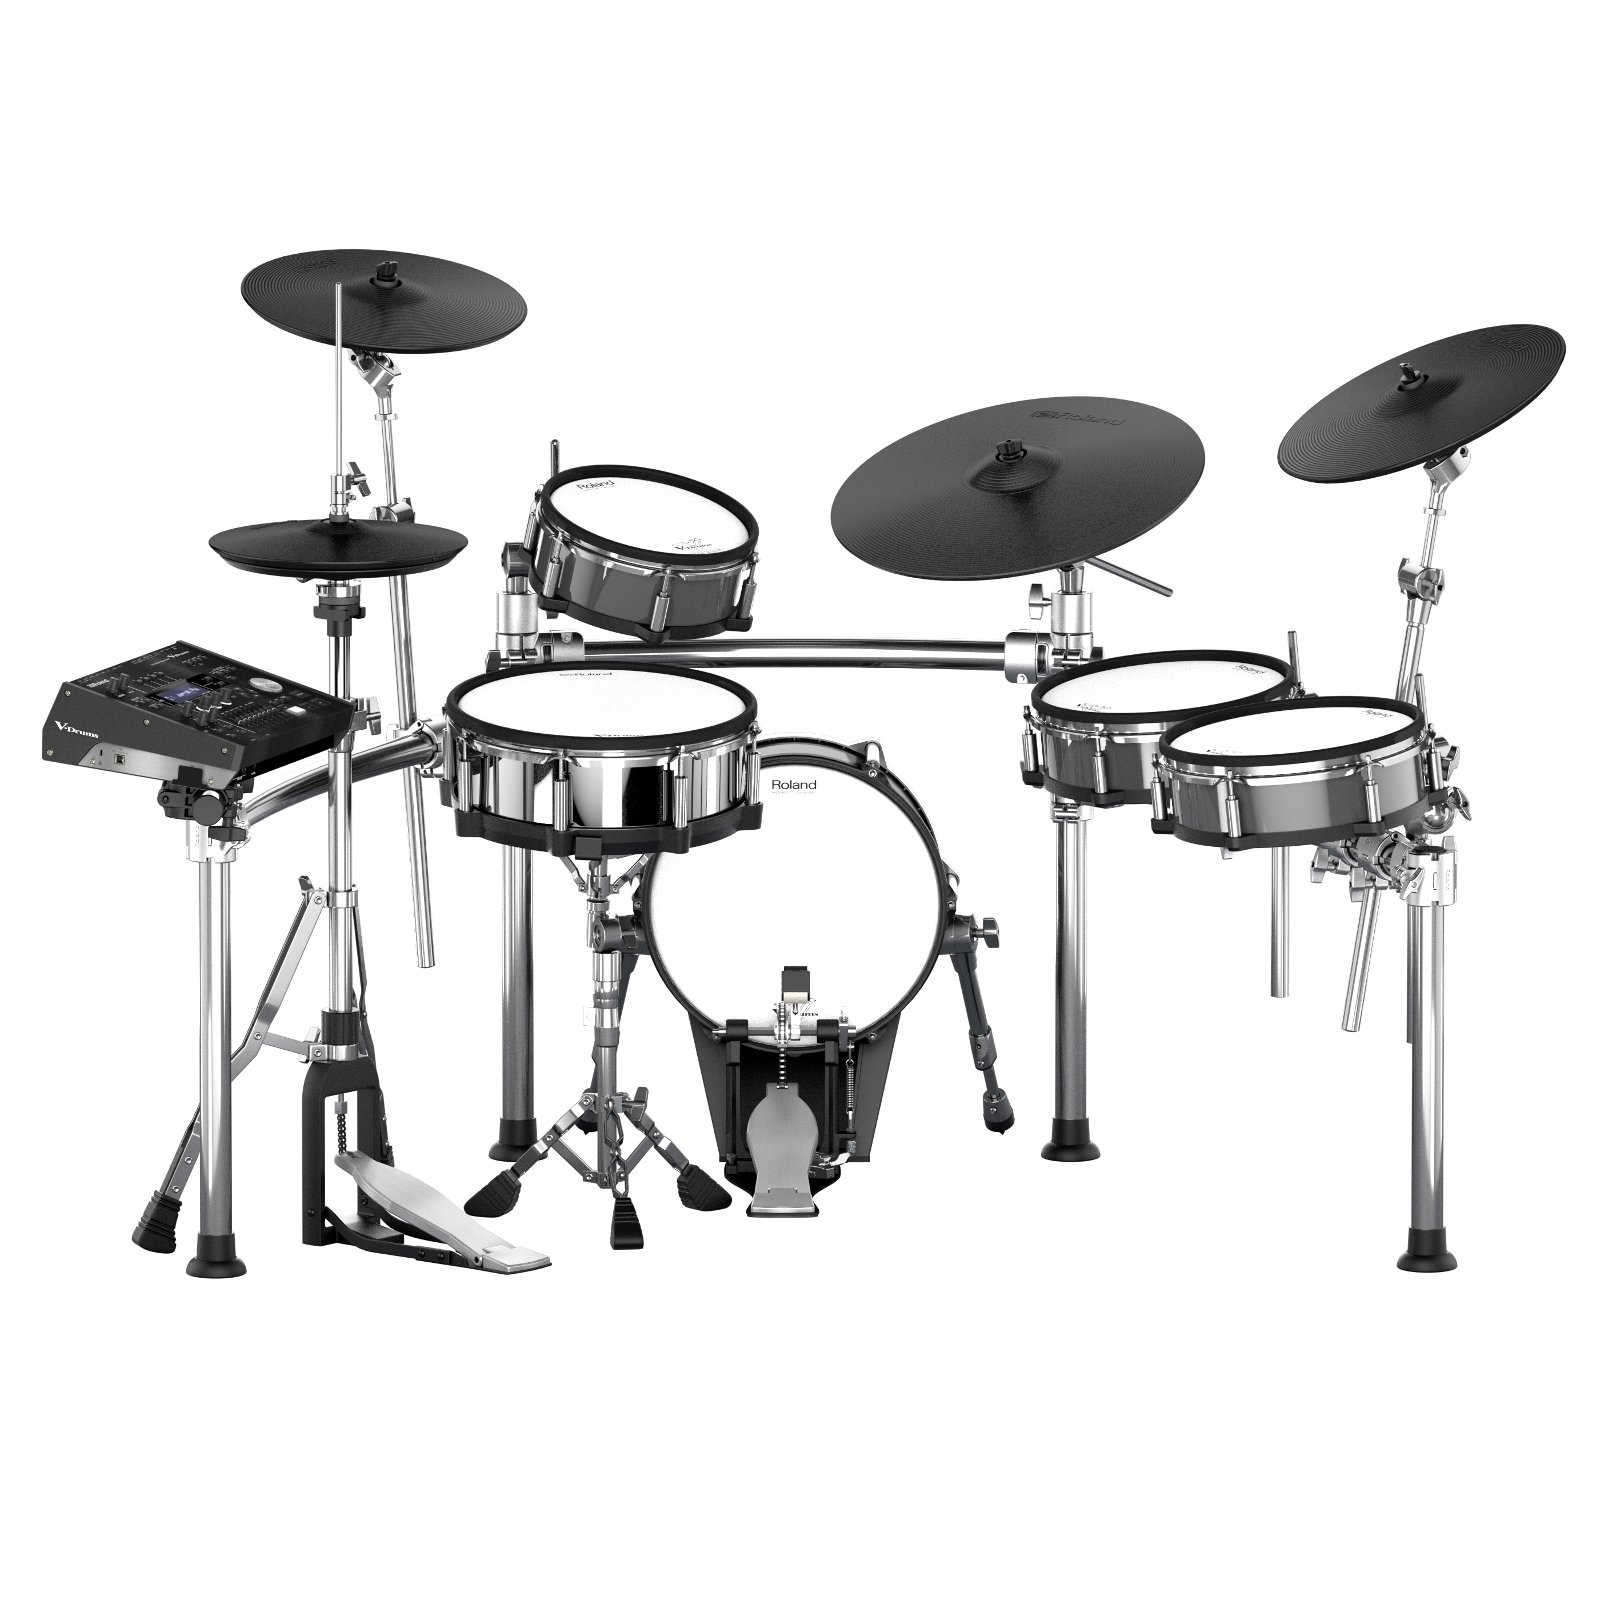 Ultimate V-Drums Kit for Professional Recording